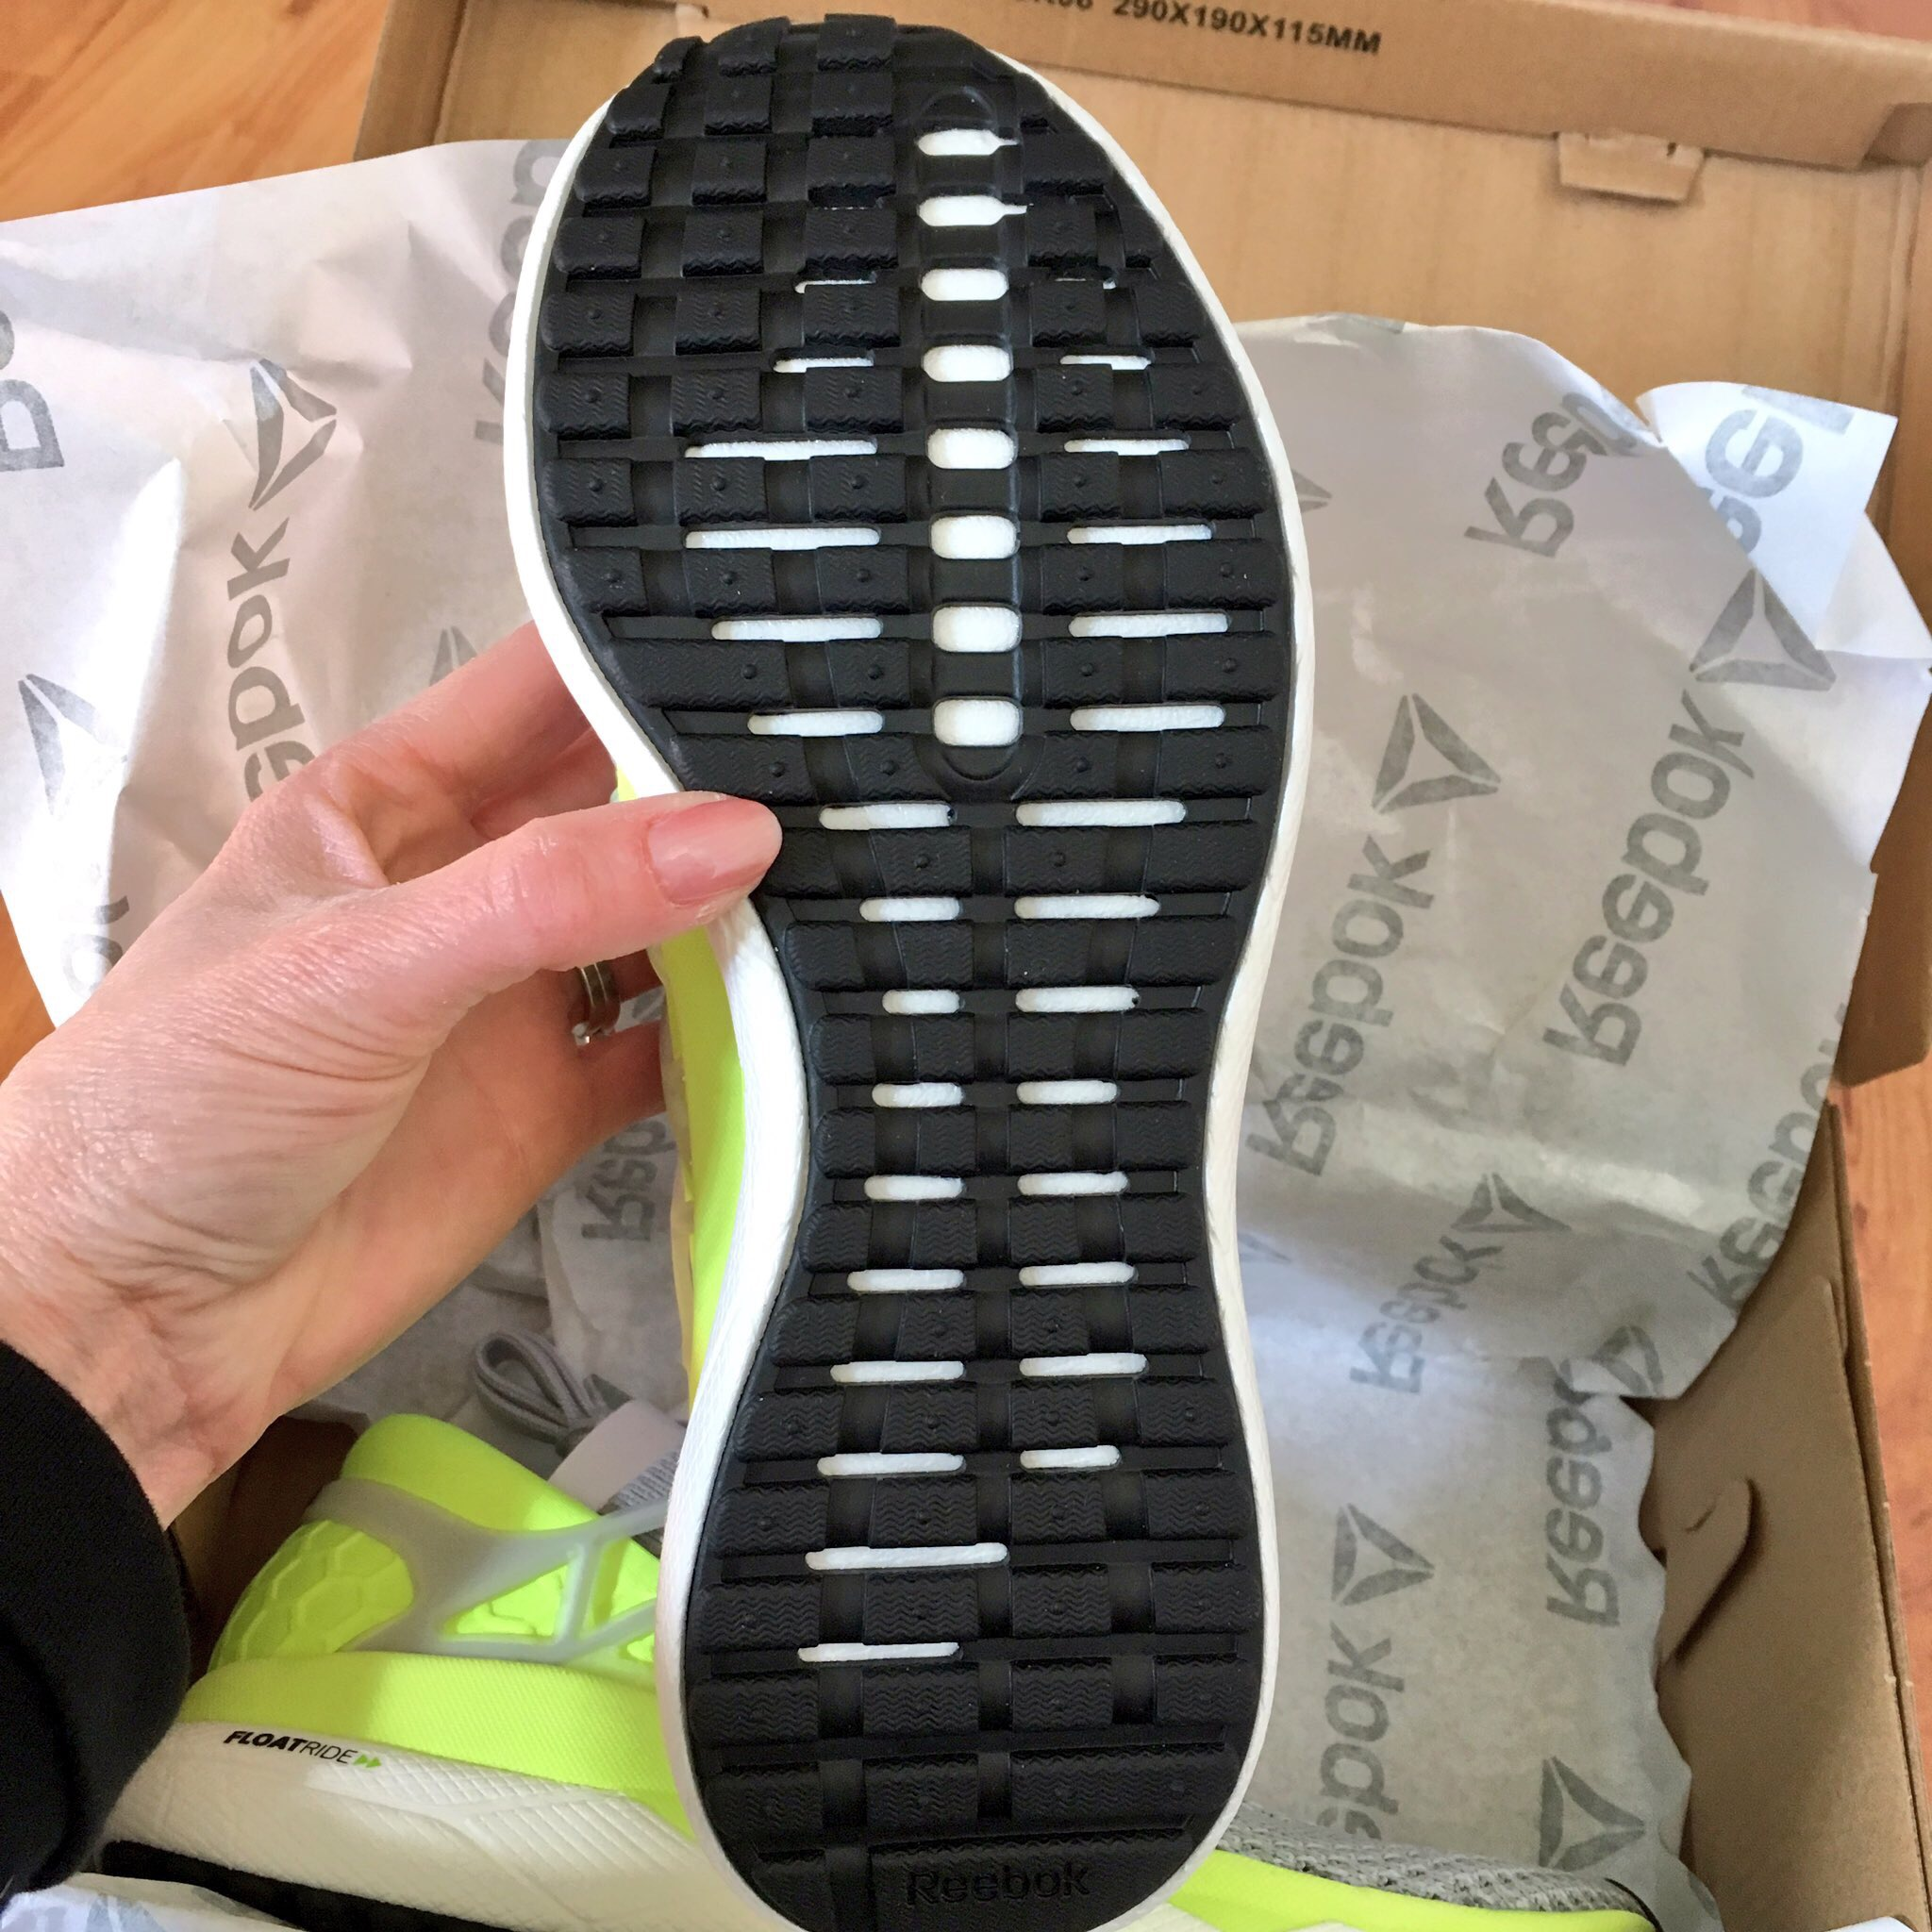 The women's colour is light grey and fluoro yellow, while the mens are black and blue. The grey upper is stretchy like a sock, called ultraknit, with a supportive plastic cage. This provides support yet comfort for wider feet, but also accommodates a narrower foot (like mine), due to the elasticity of the material. The heel is more rigid, like a traditional running shoe to give support.